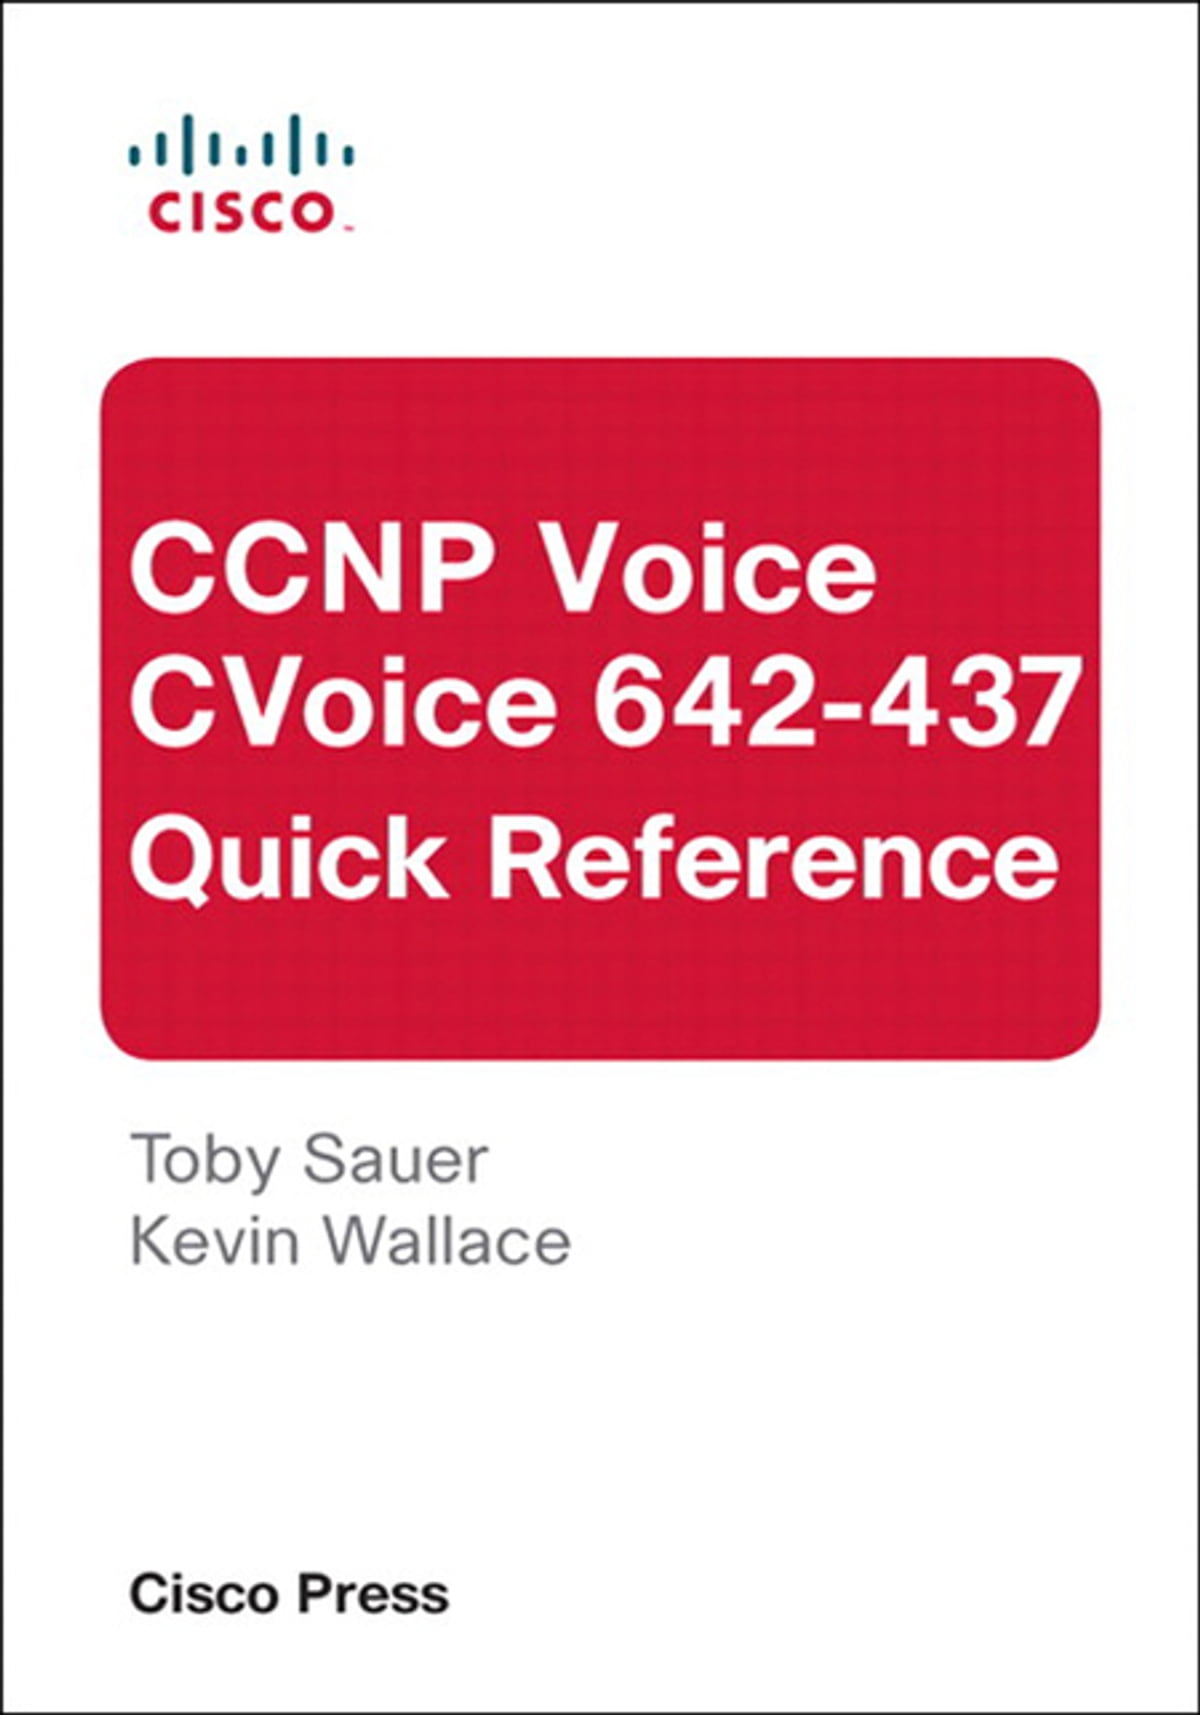 CCNP Voice CVoice 642-437 Quick Reference eBook by Toby Sauer -  9780132375566 | Rakuten Kobo